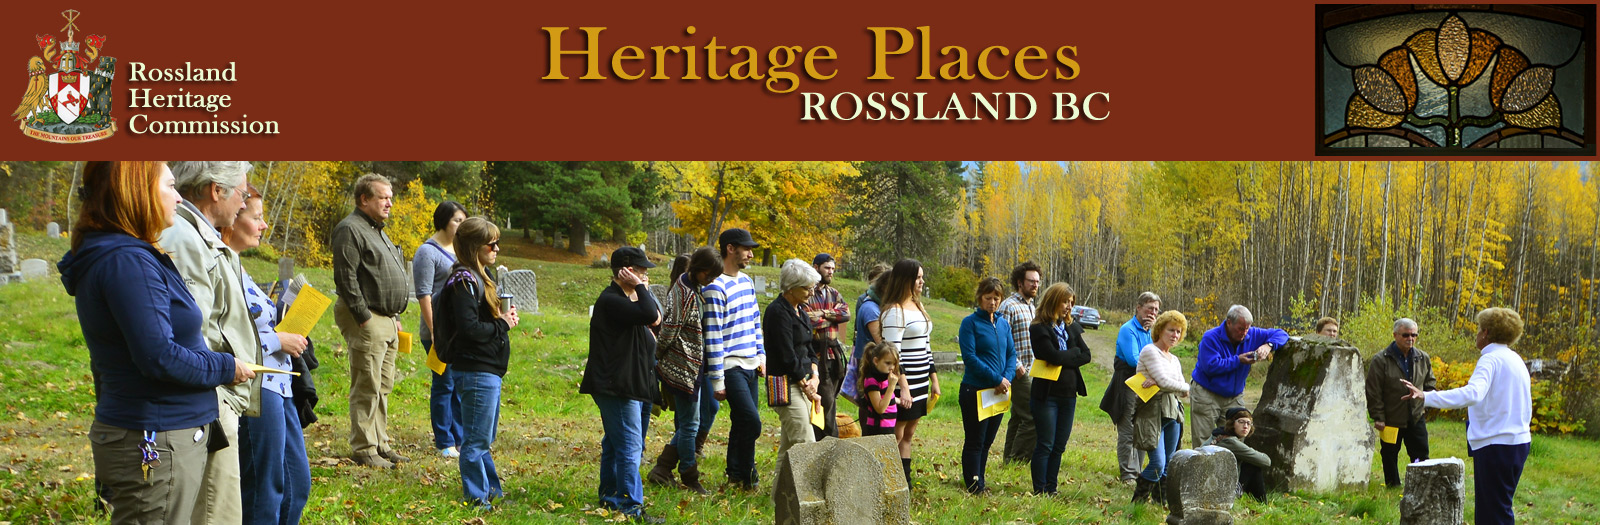 Rossland Heritage Commission - Heritage Homes Tours page